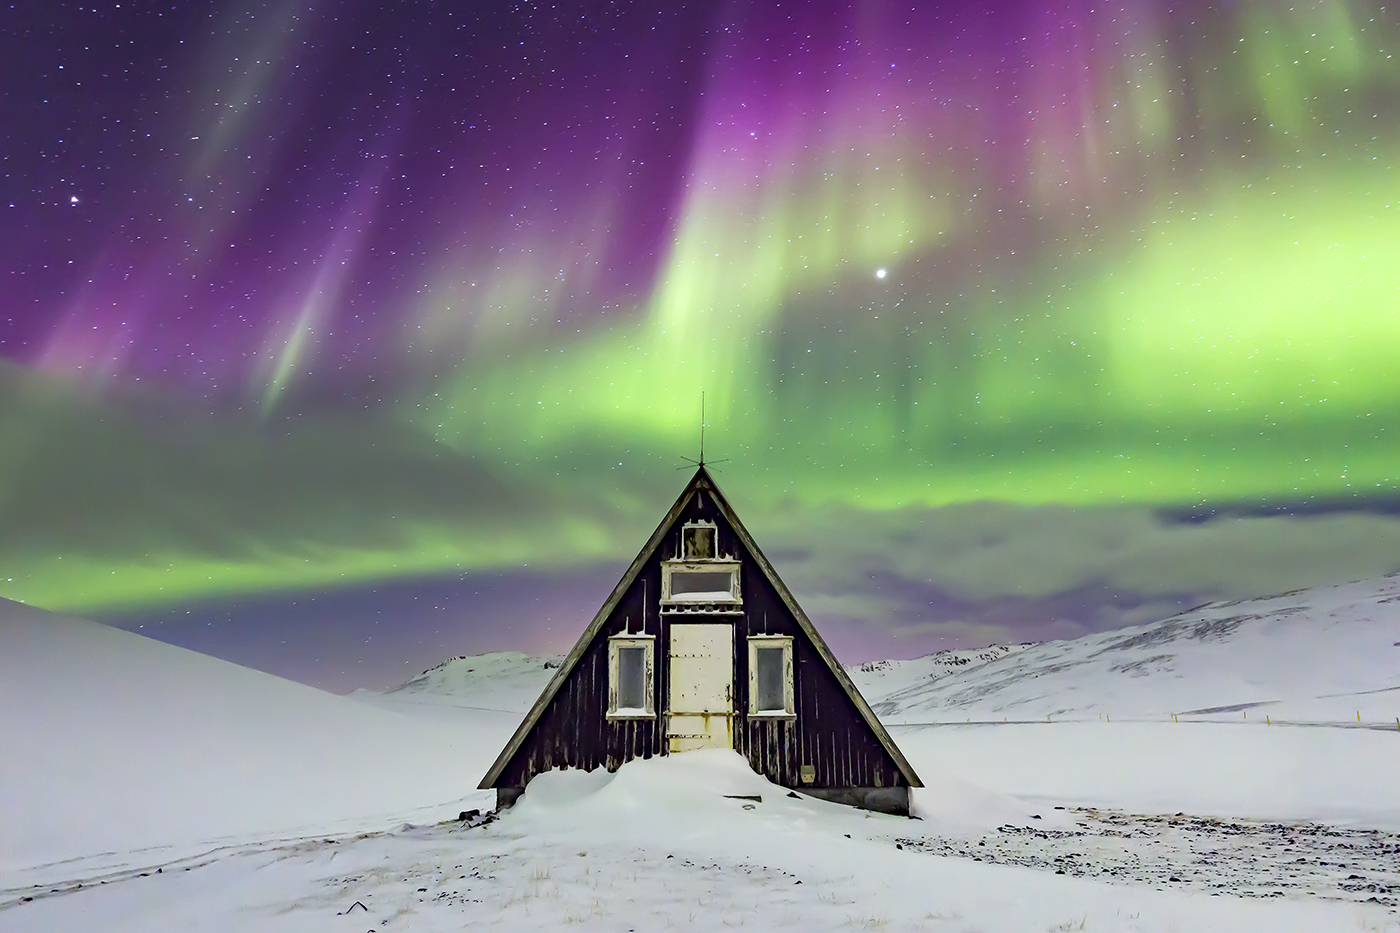 Aurora Borealis, Emergency Mountain Hut, Iceland